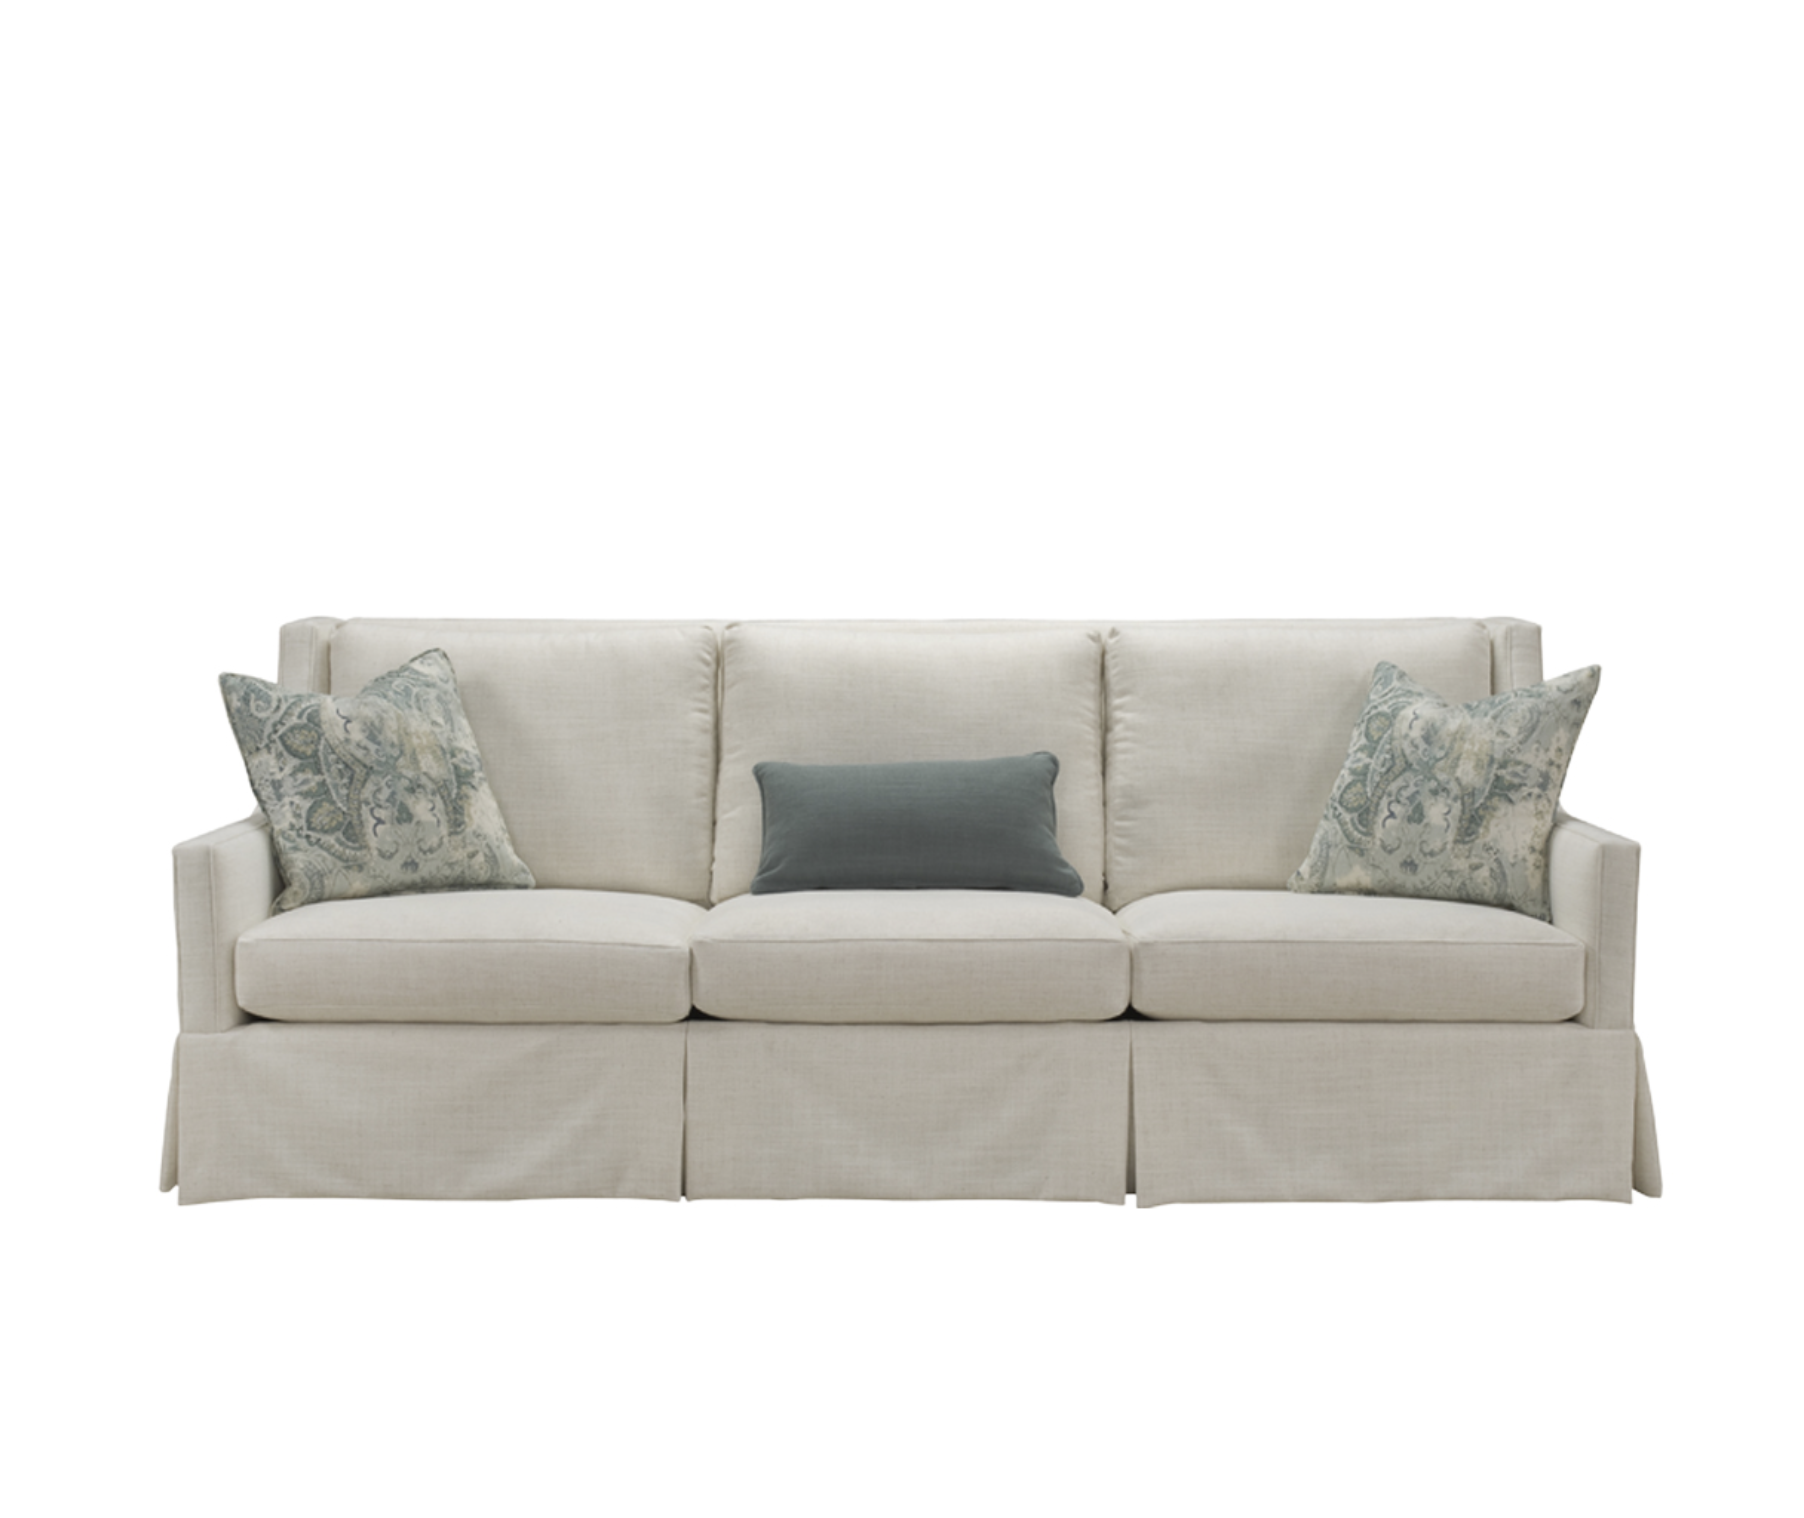 Customizable Hudson Apartment Sofa